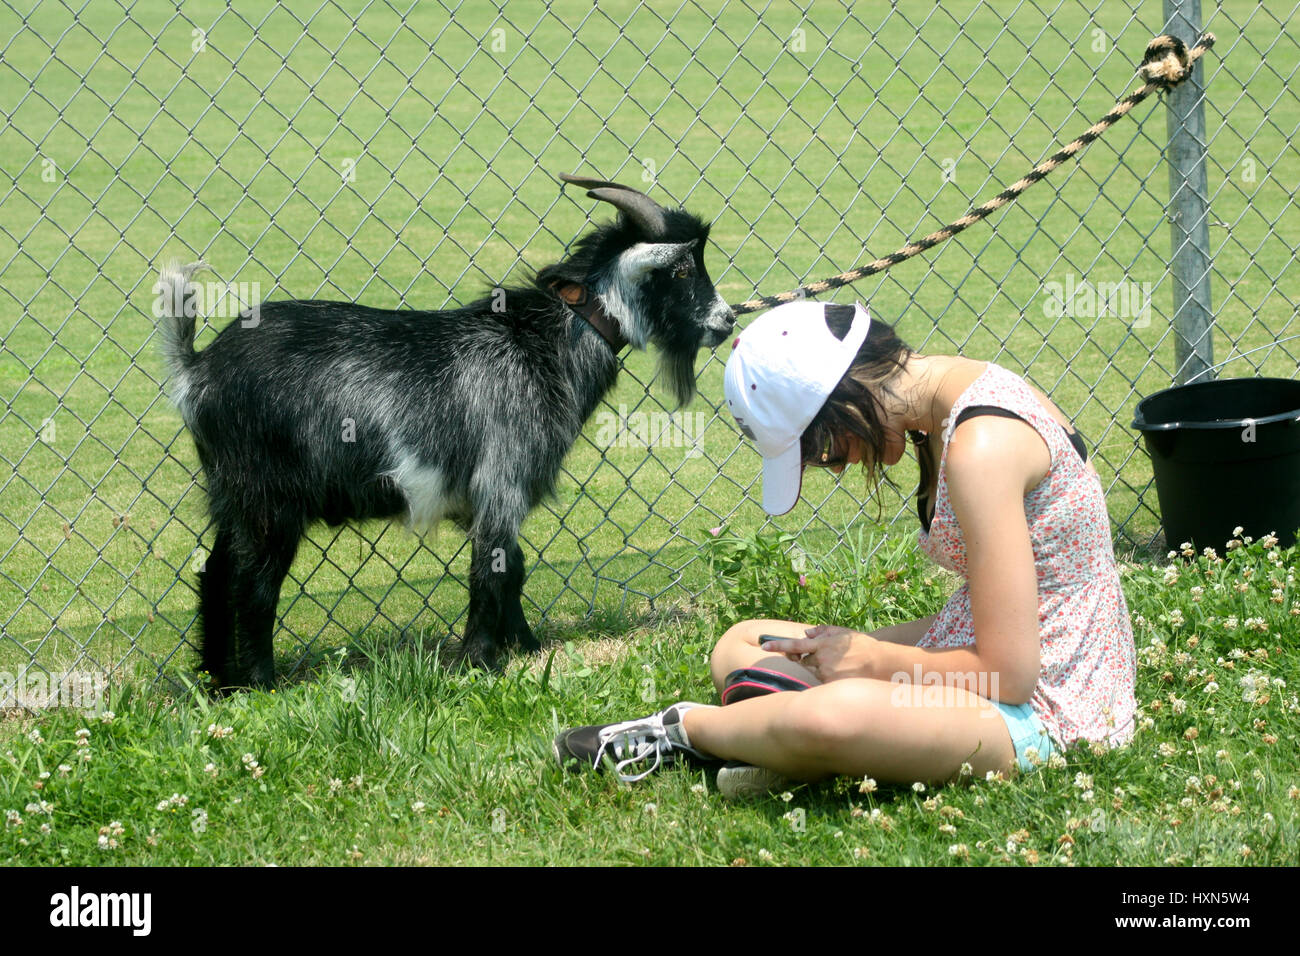 Young girl on her iphone, with small goat beside her Stock